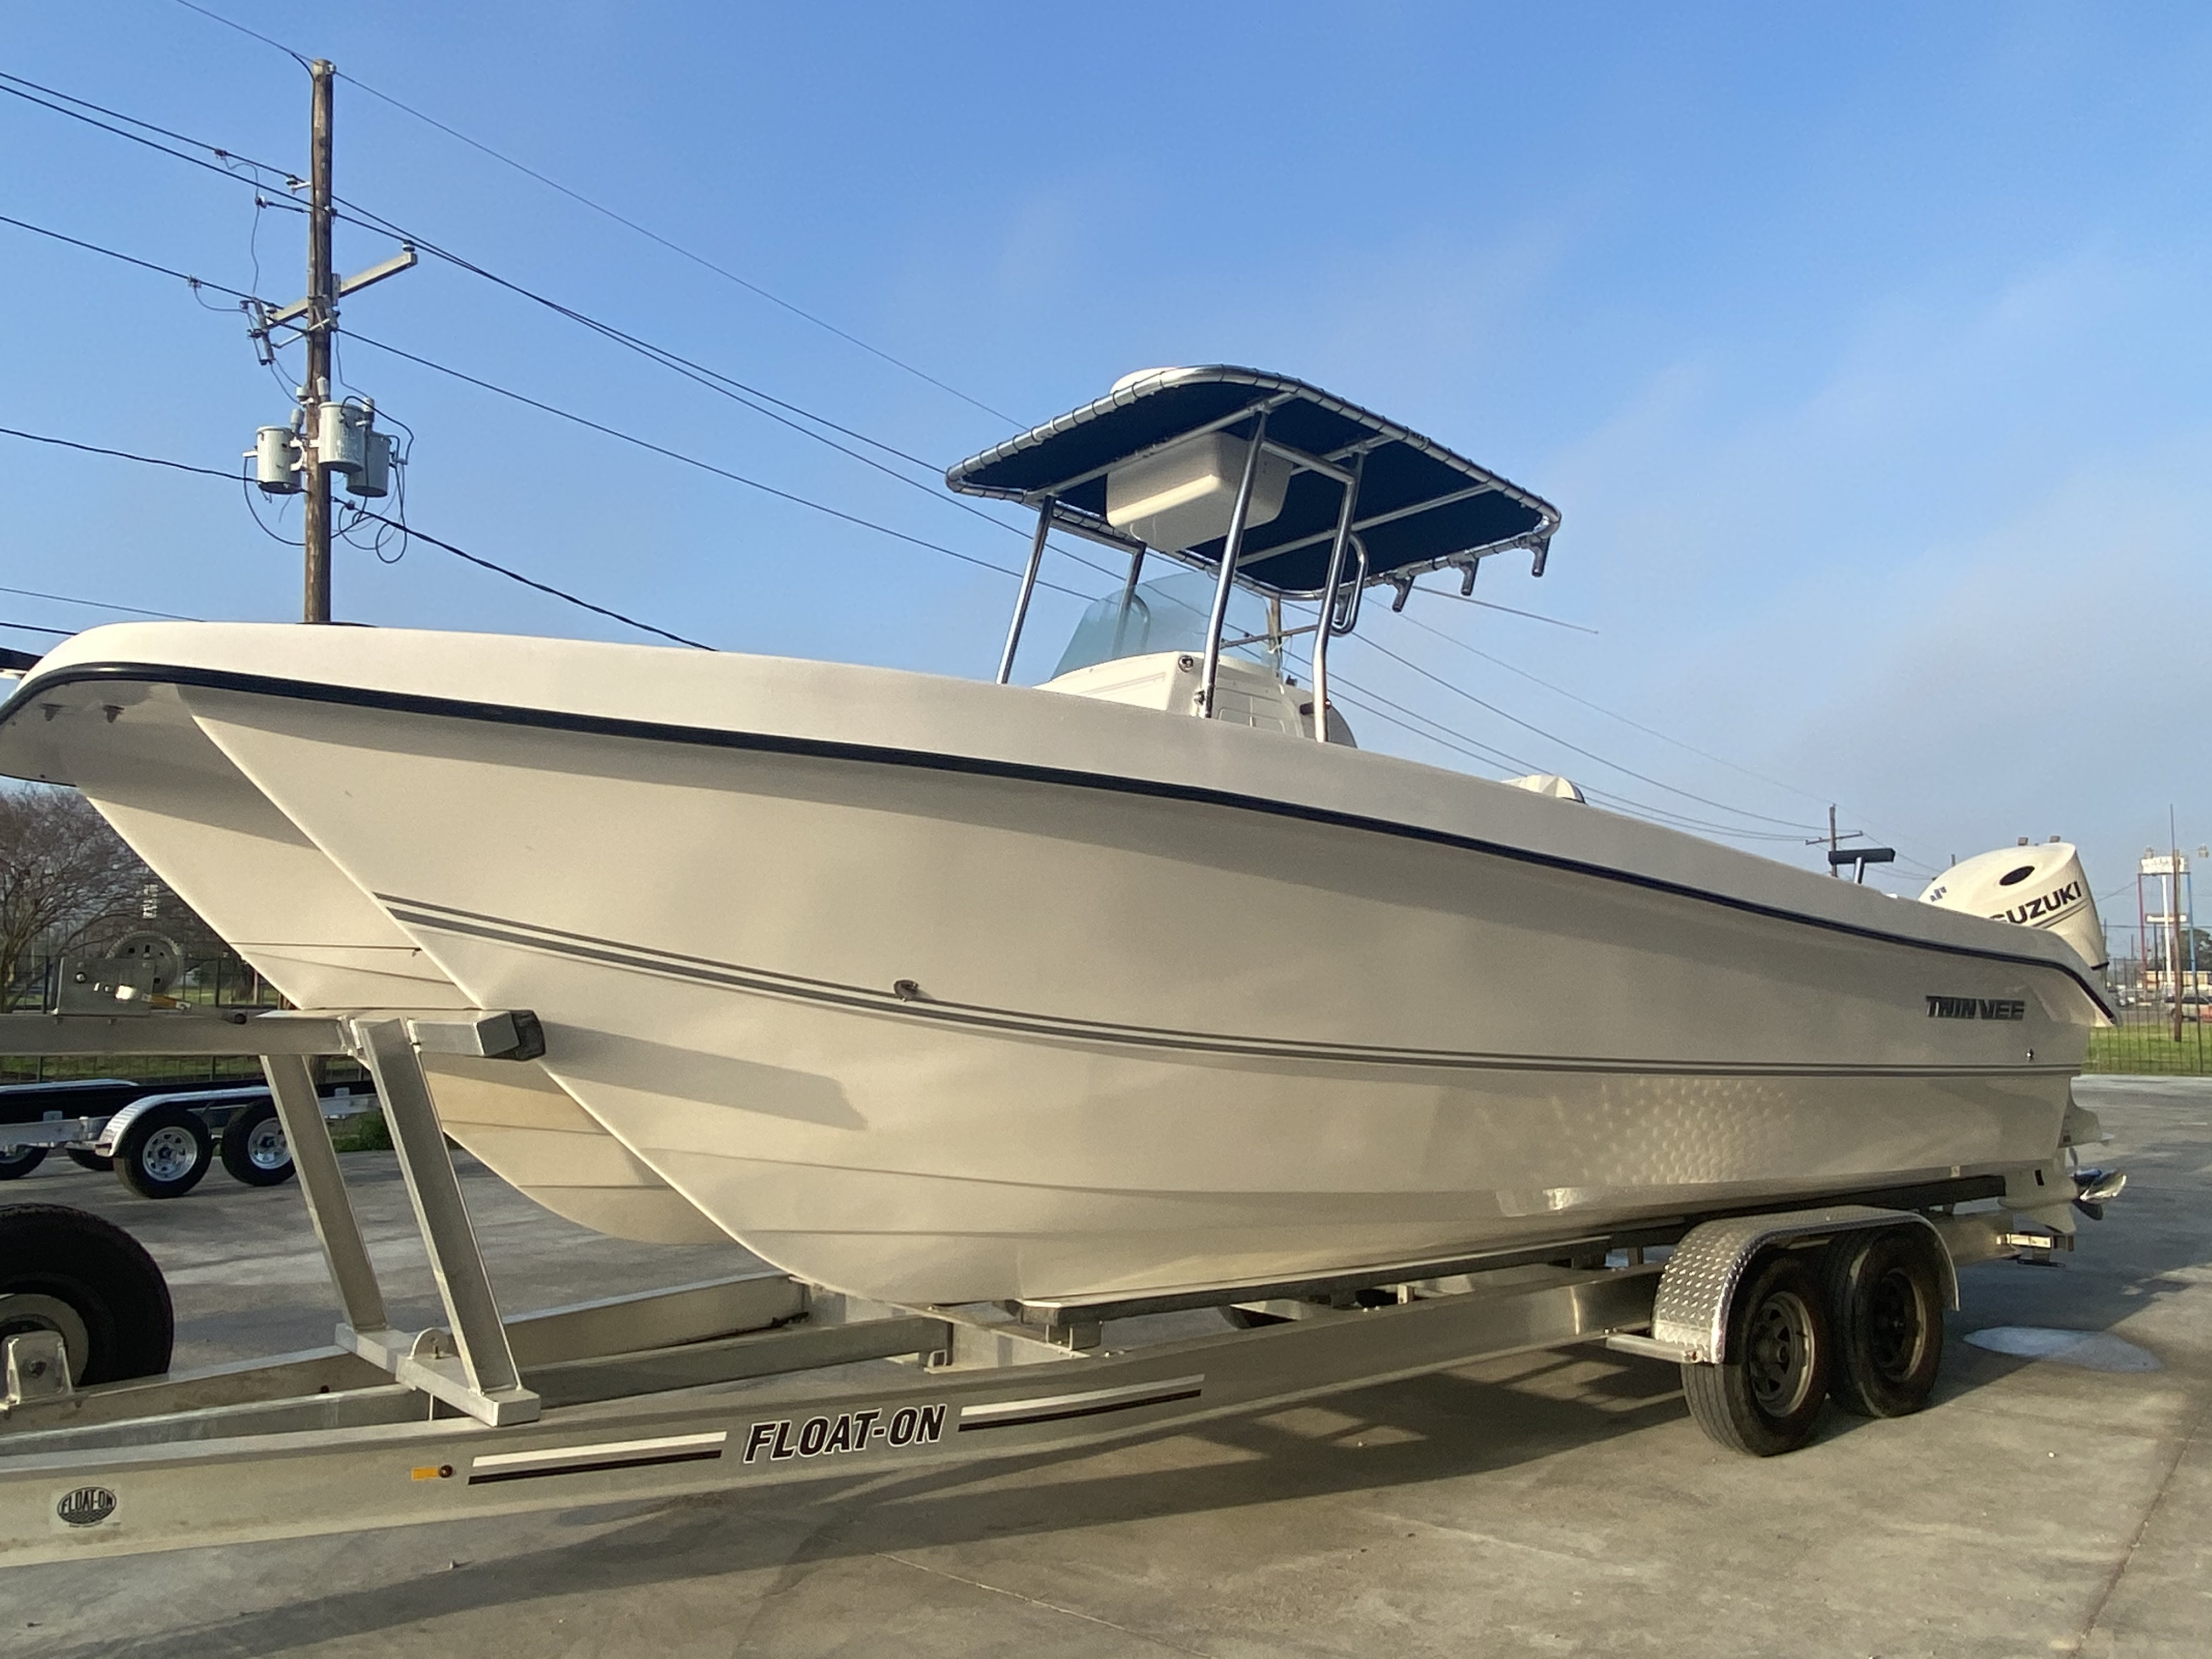 2020 Twin Vee boat for sale, model of the boat is 26 Pro & Image # 3 of 24